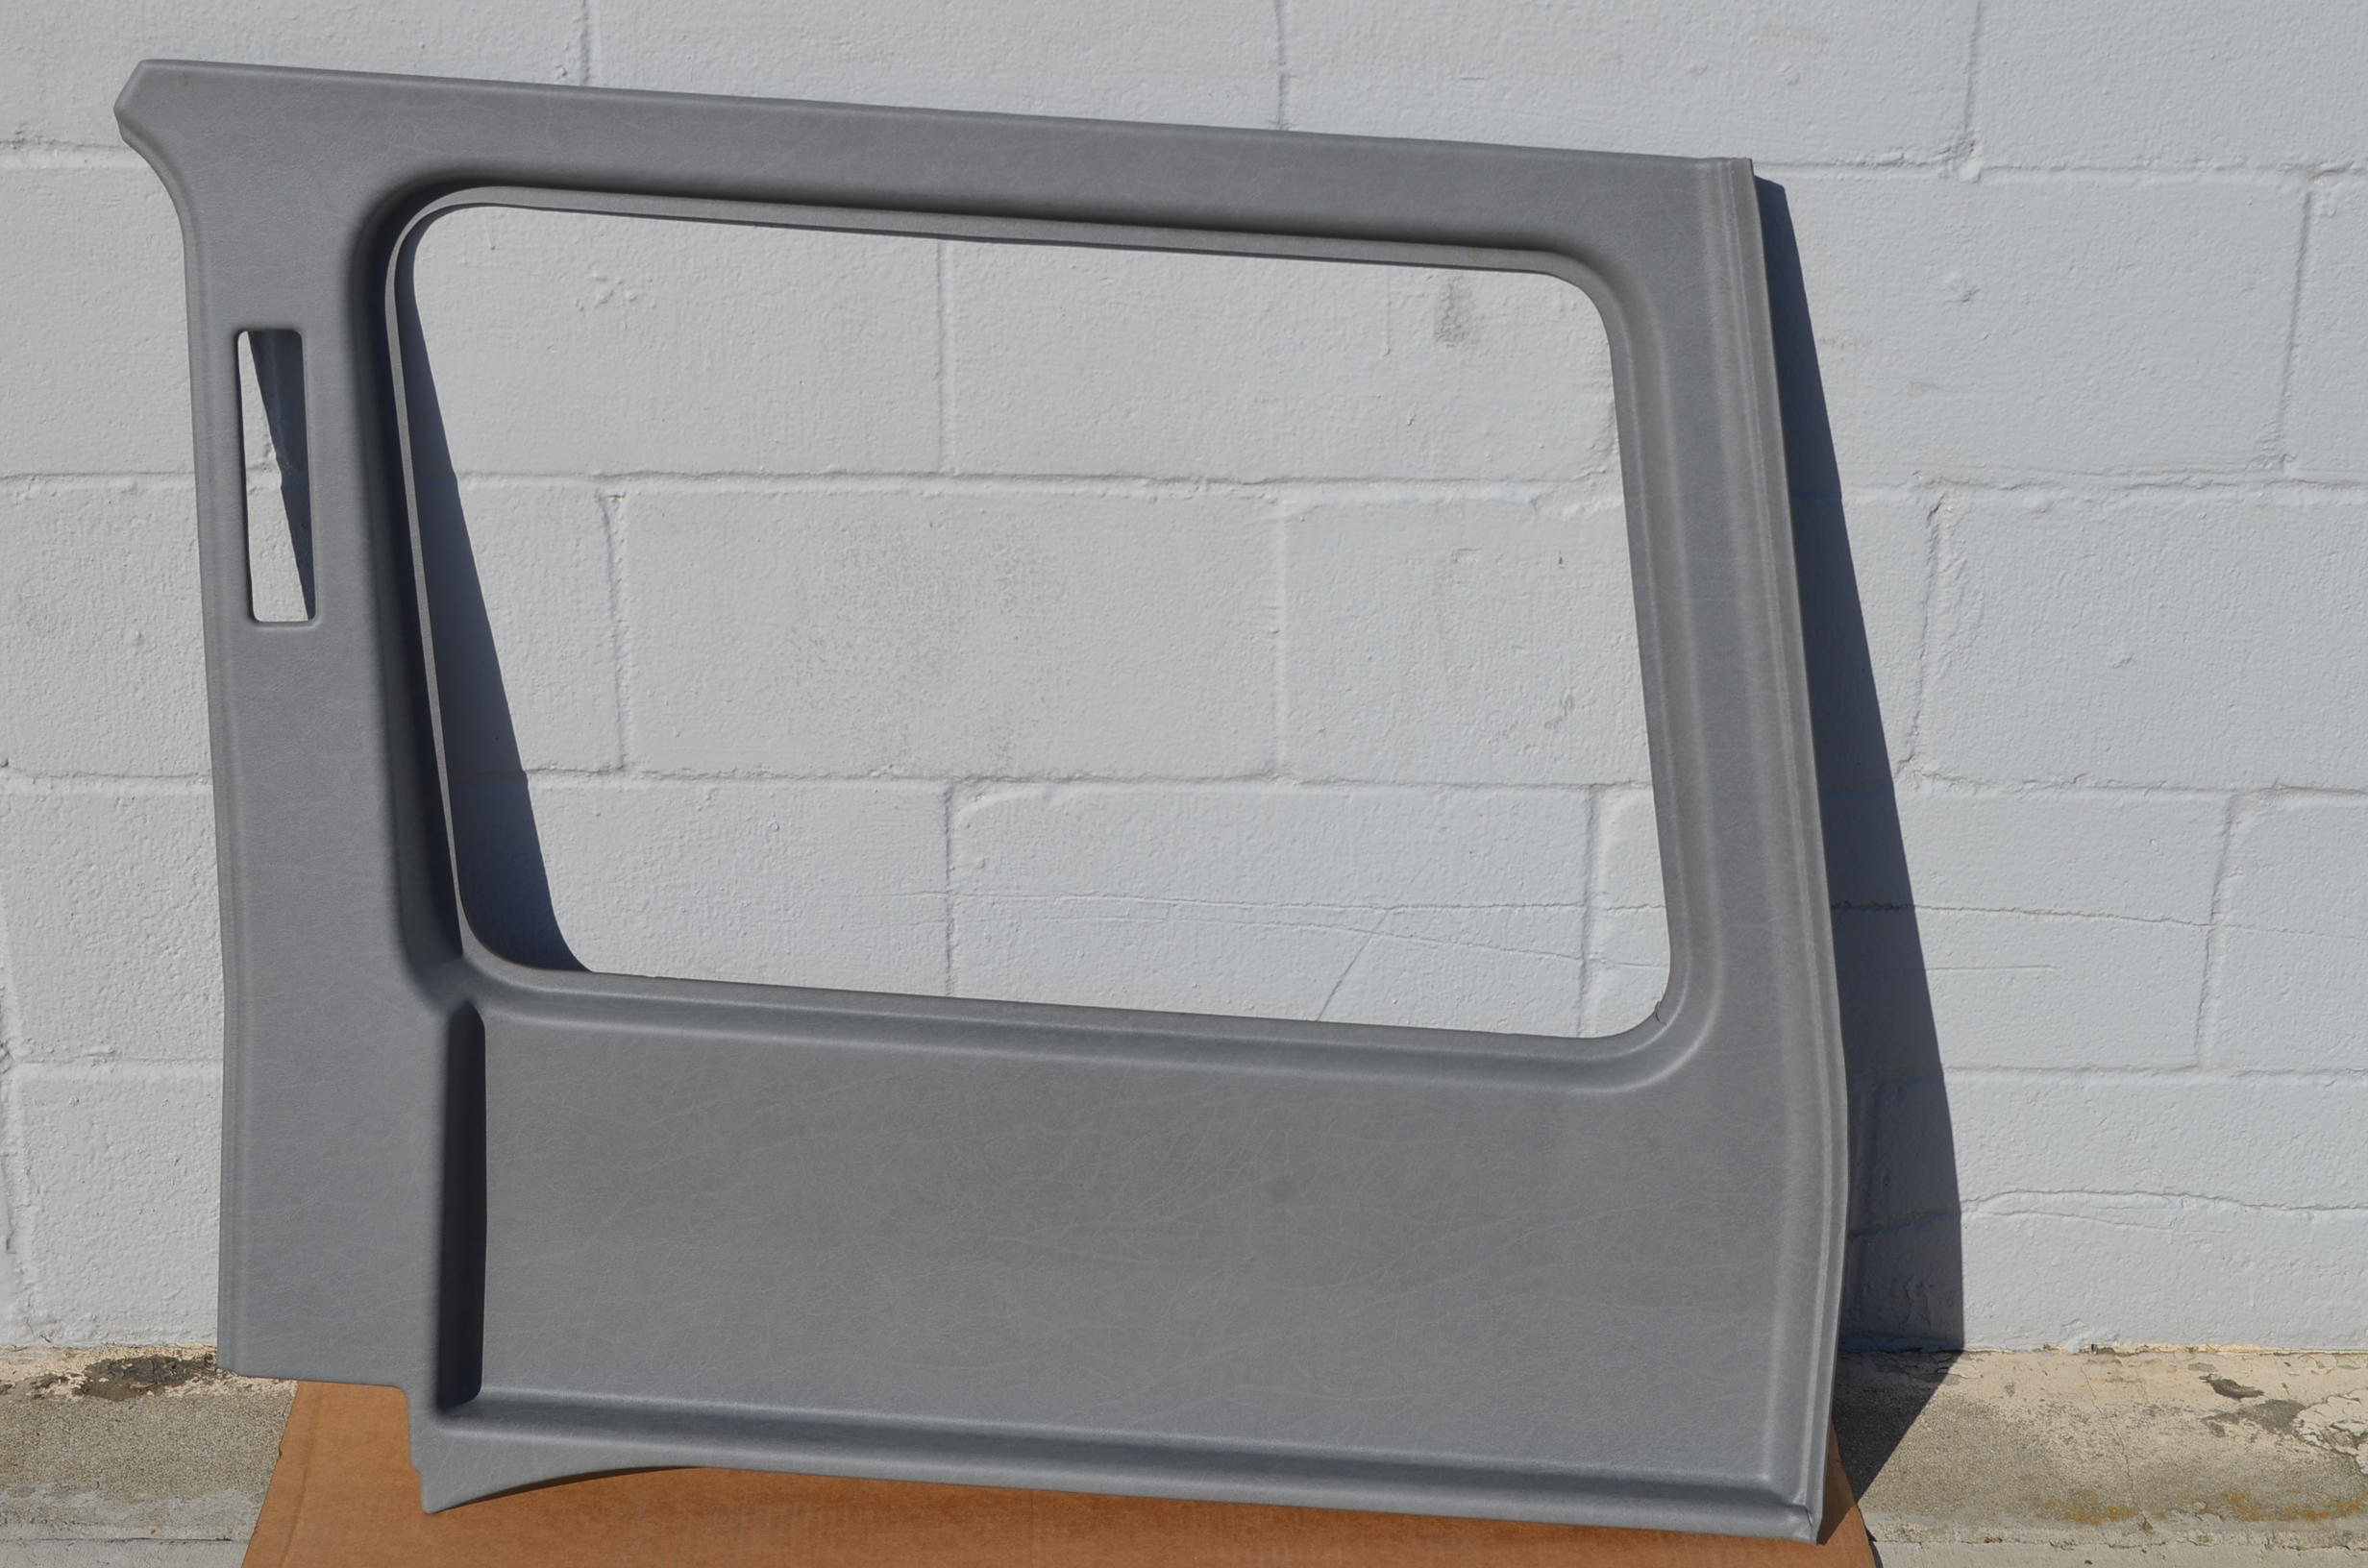 UPPER REAR SIDE PANEL - LWB - RIGHT - GREY